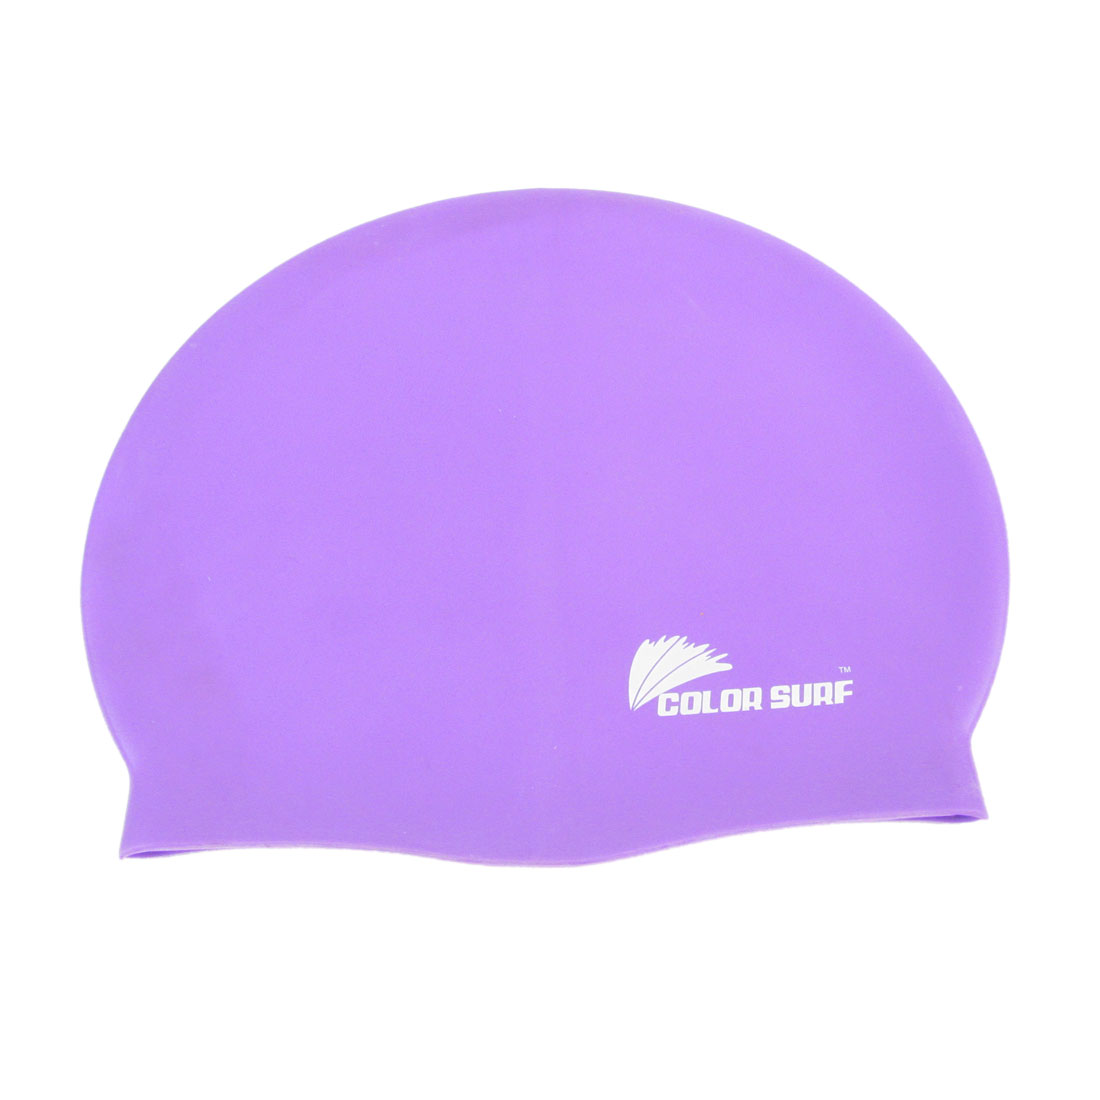 Flexible Sporty Letters Printed Silicone Swimming Cap Purple for Women